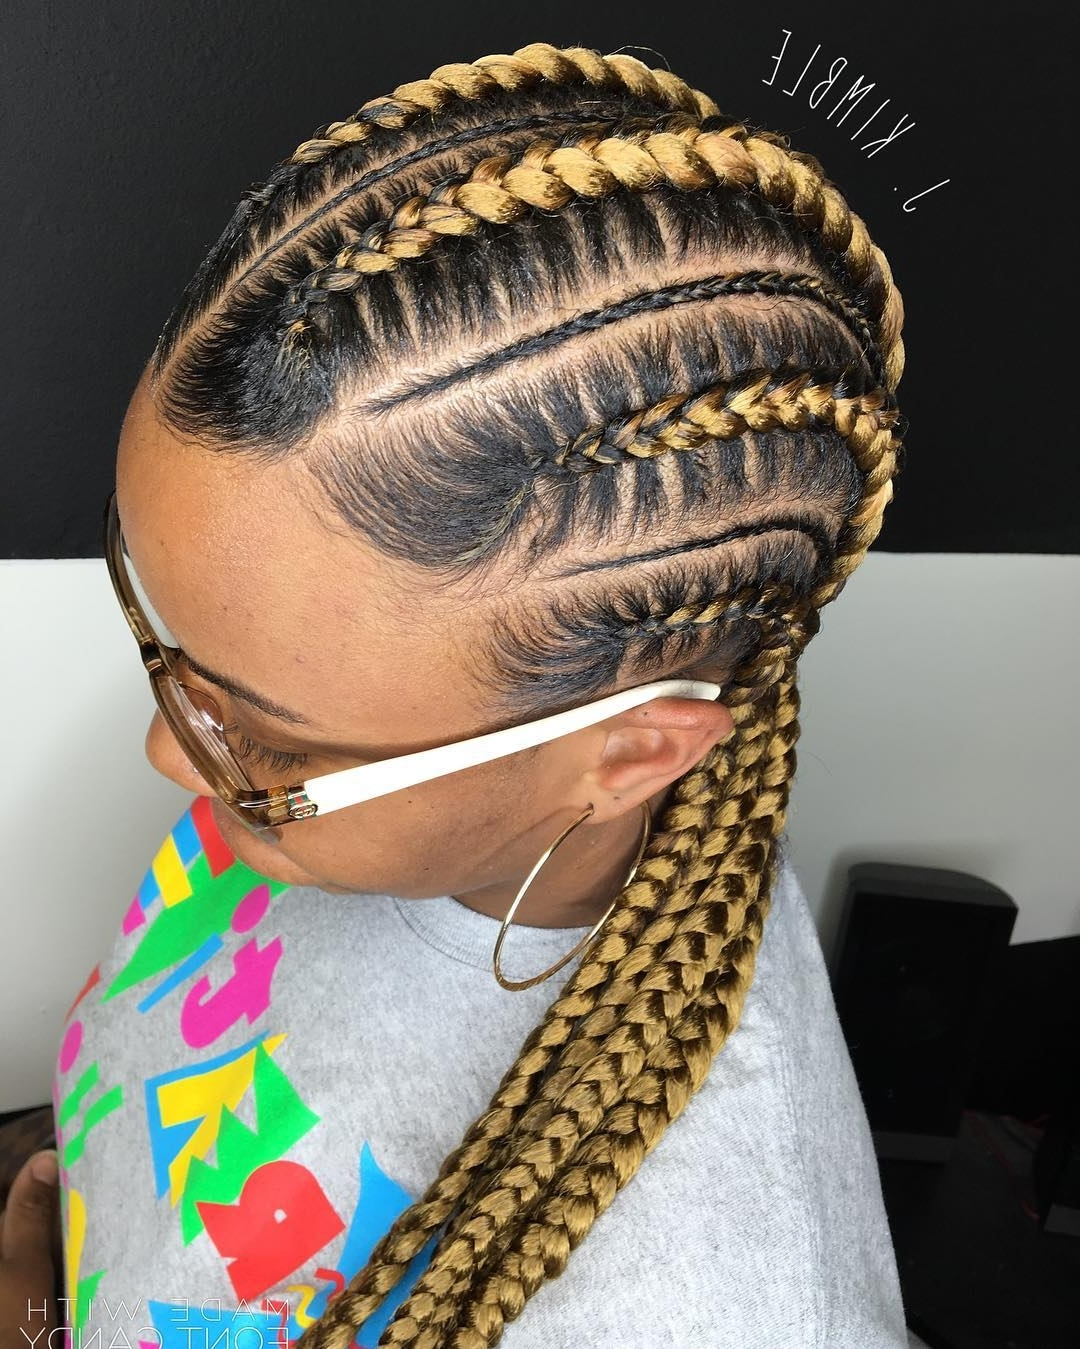 70 Best Black Braided Hairstyles That Turn Heads In 2018 Within Most Current Braided Rasta Hairstyles (View 11 of 15)